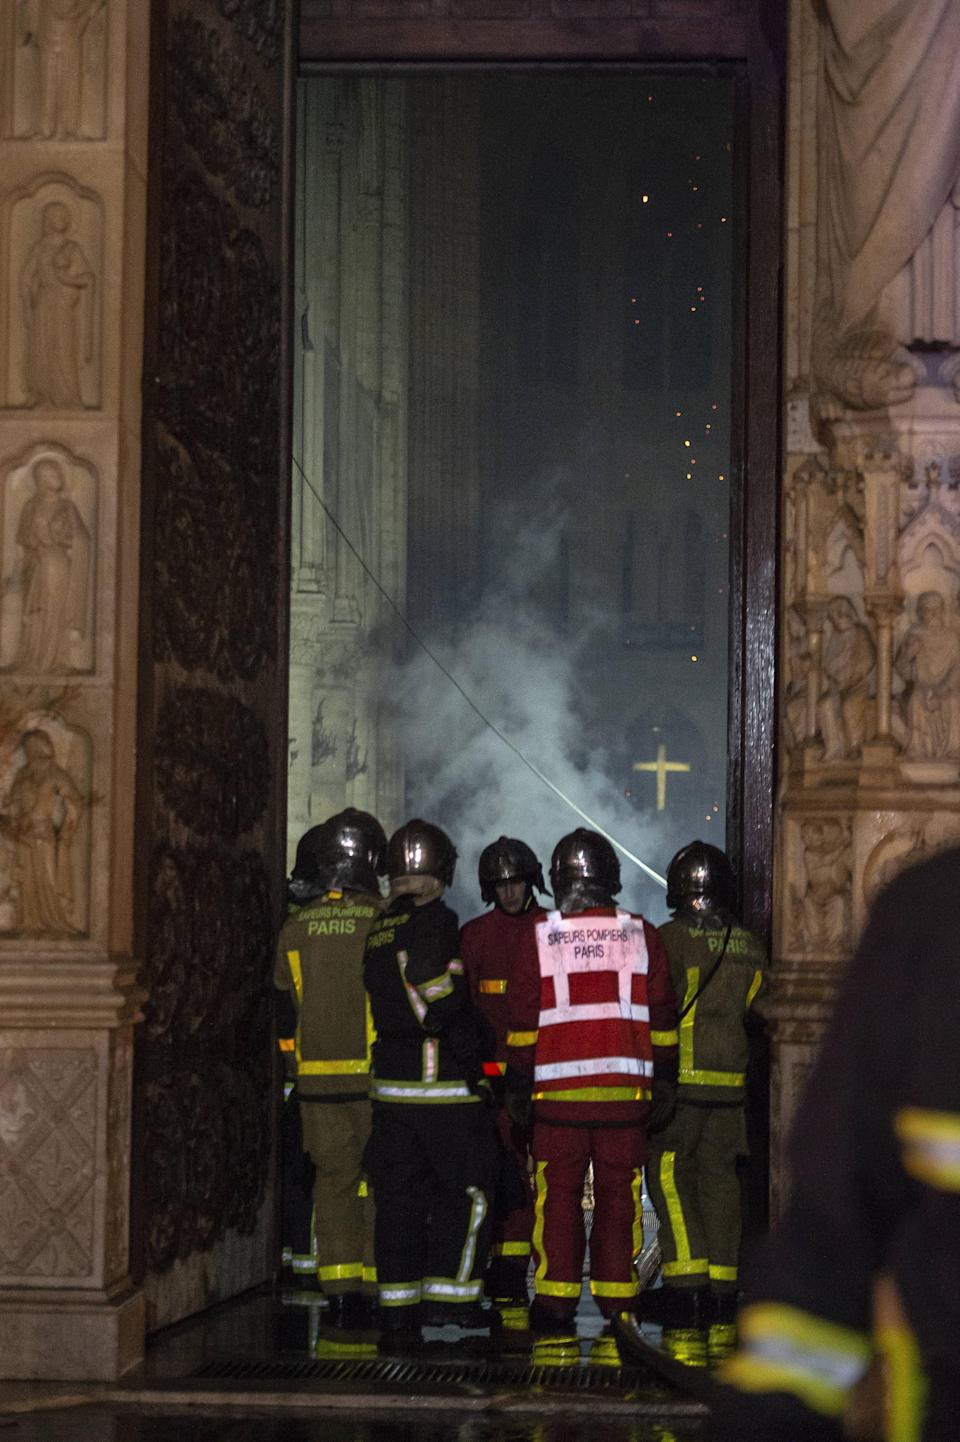 Firefighters assess the damage at Notre Dame cathedral. Source: AAP